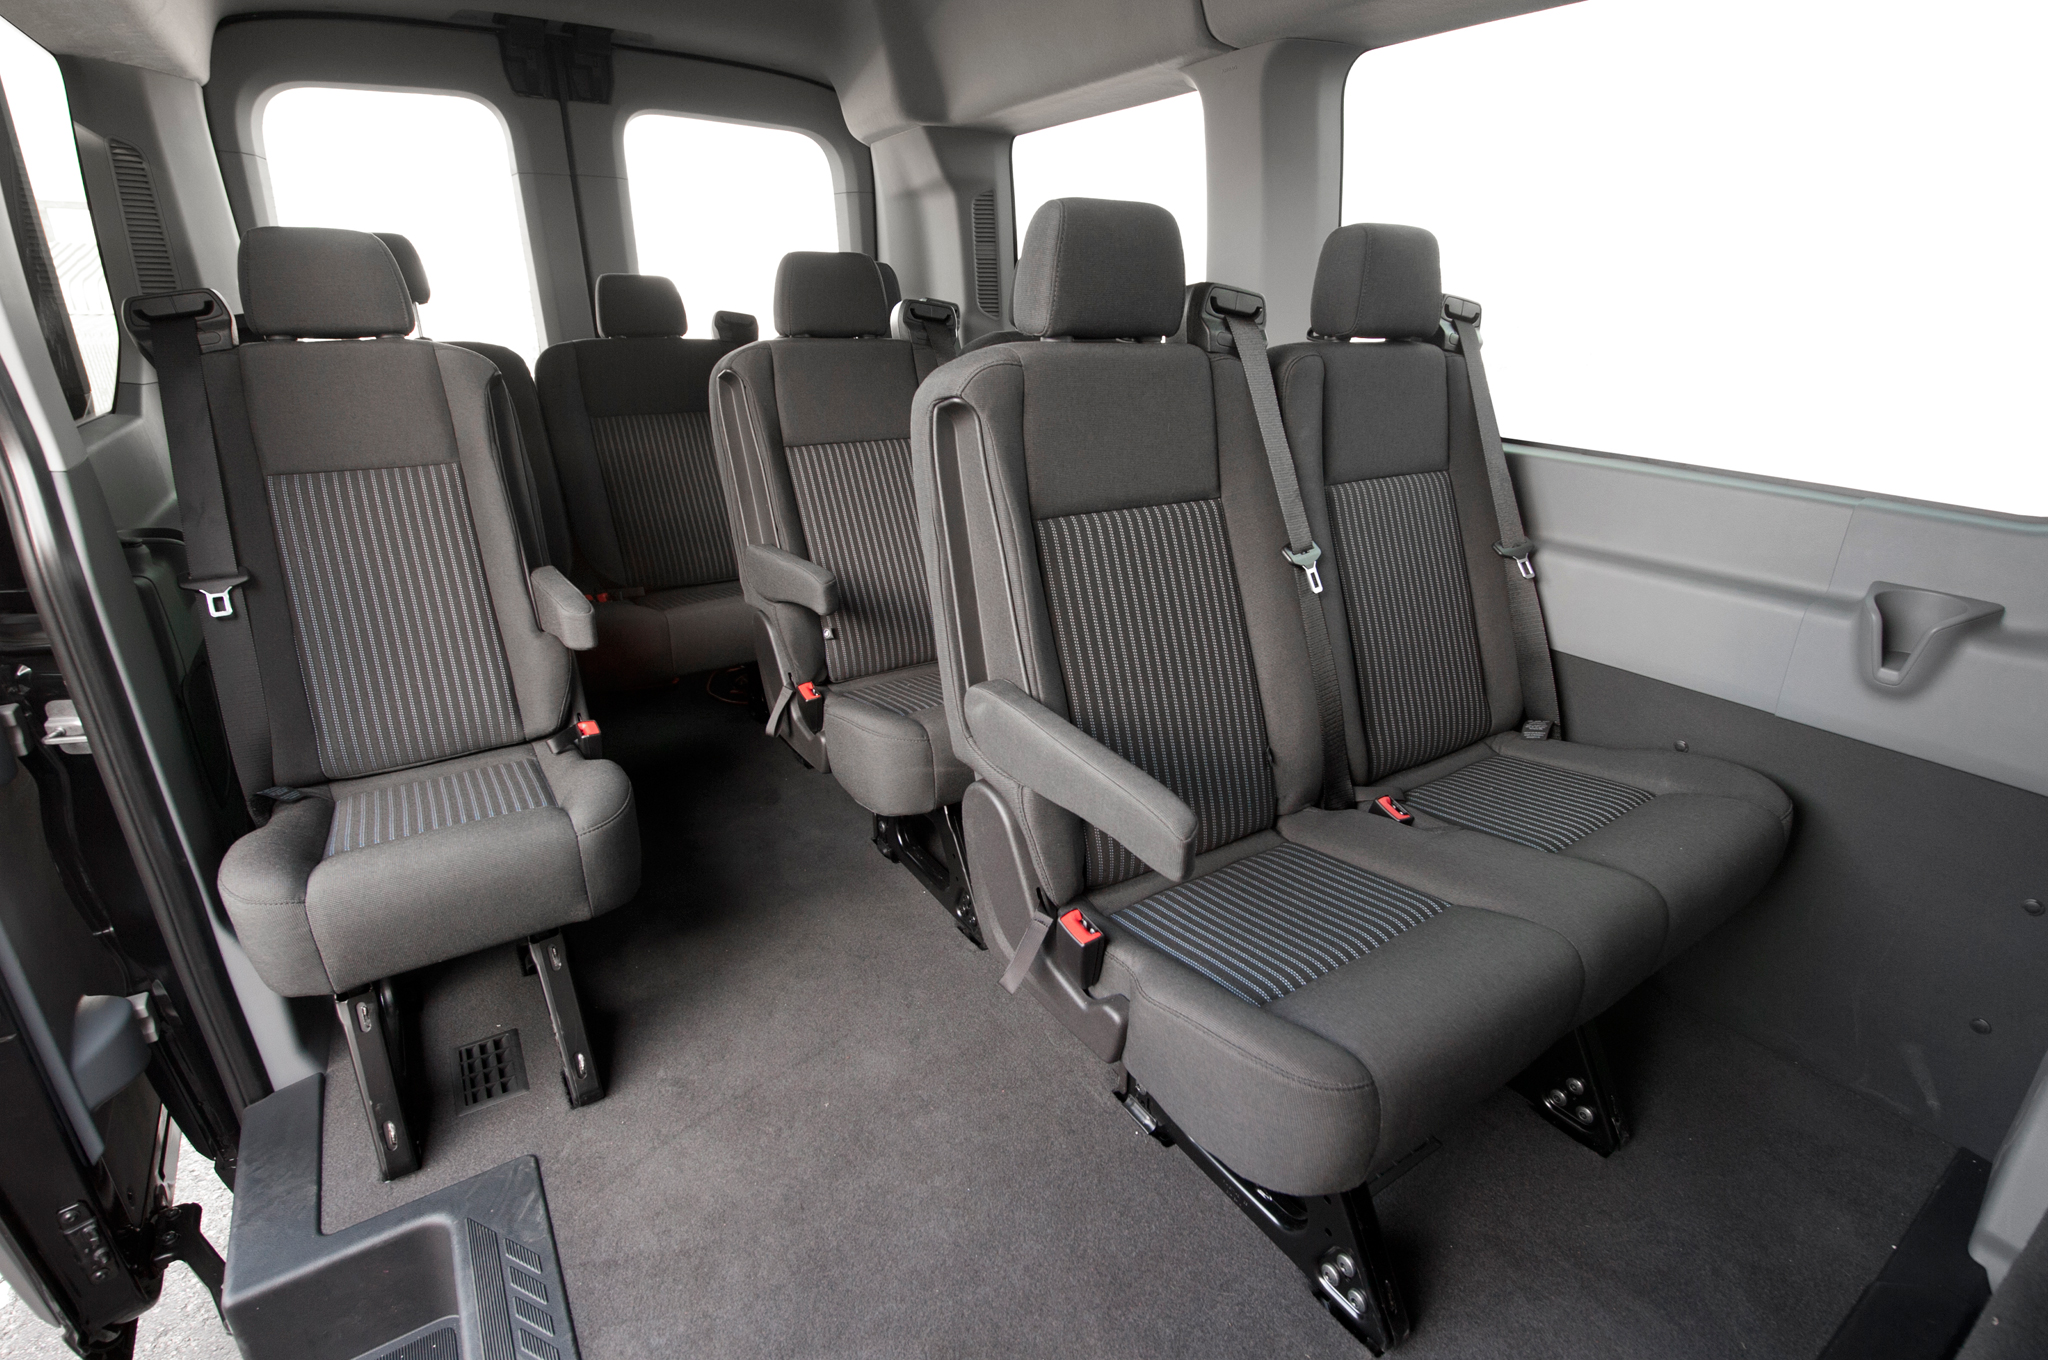 Ford Transit 350 >> 2015-Ford-Transit-150-EcoBoost-interior-seats - Power Travel